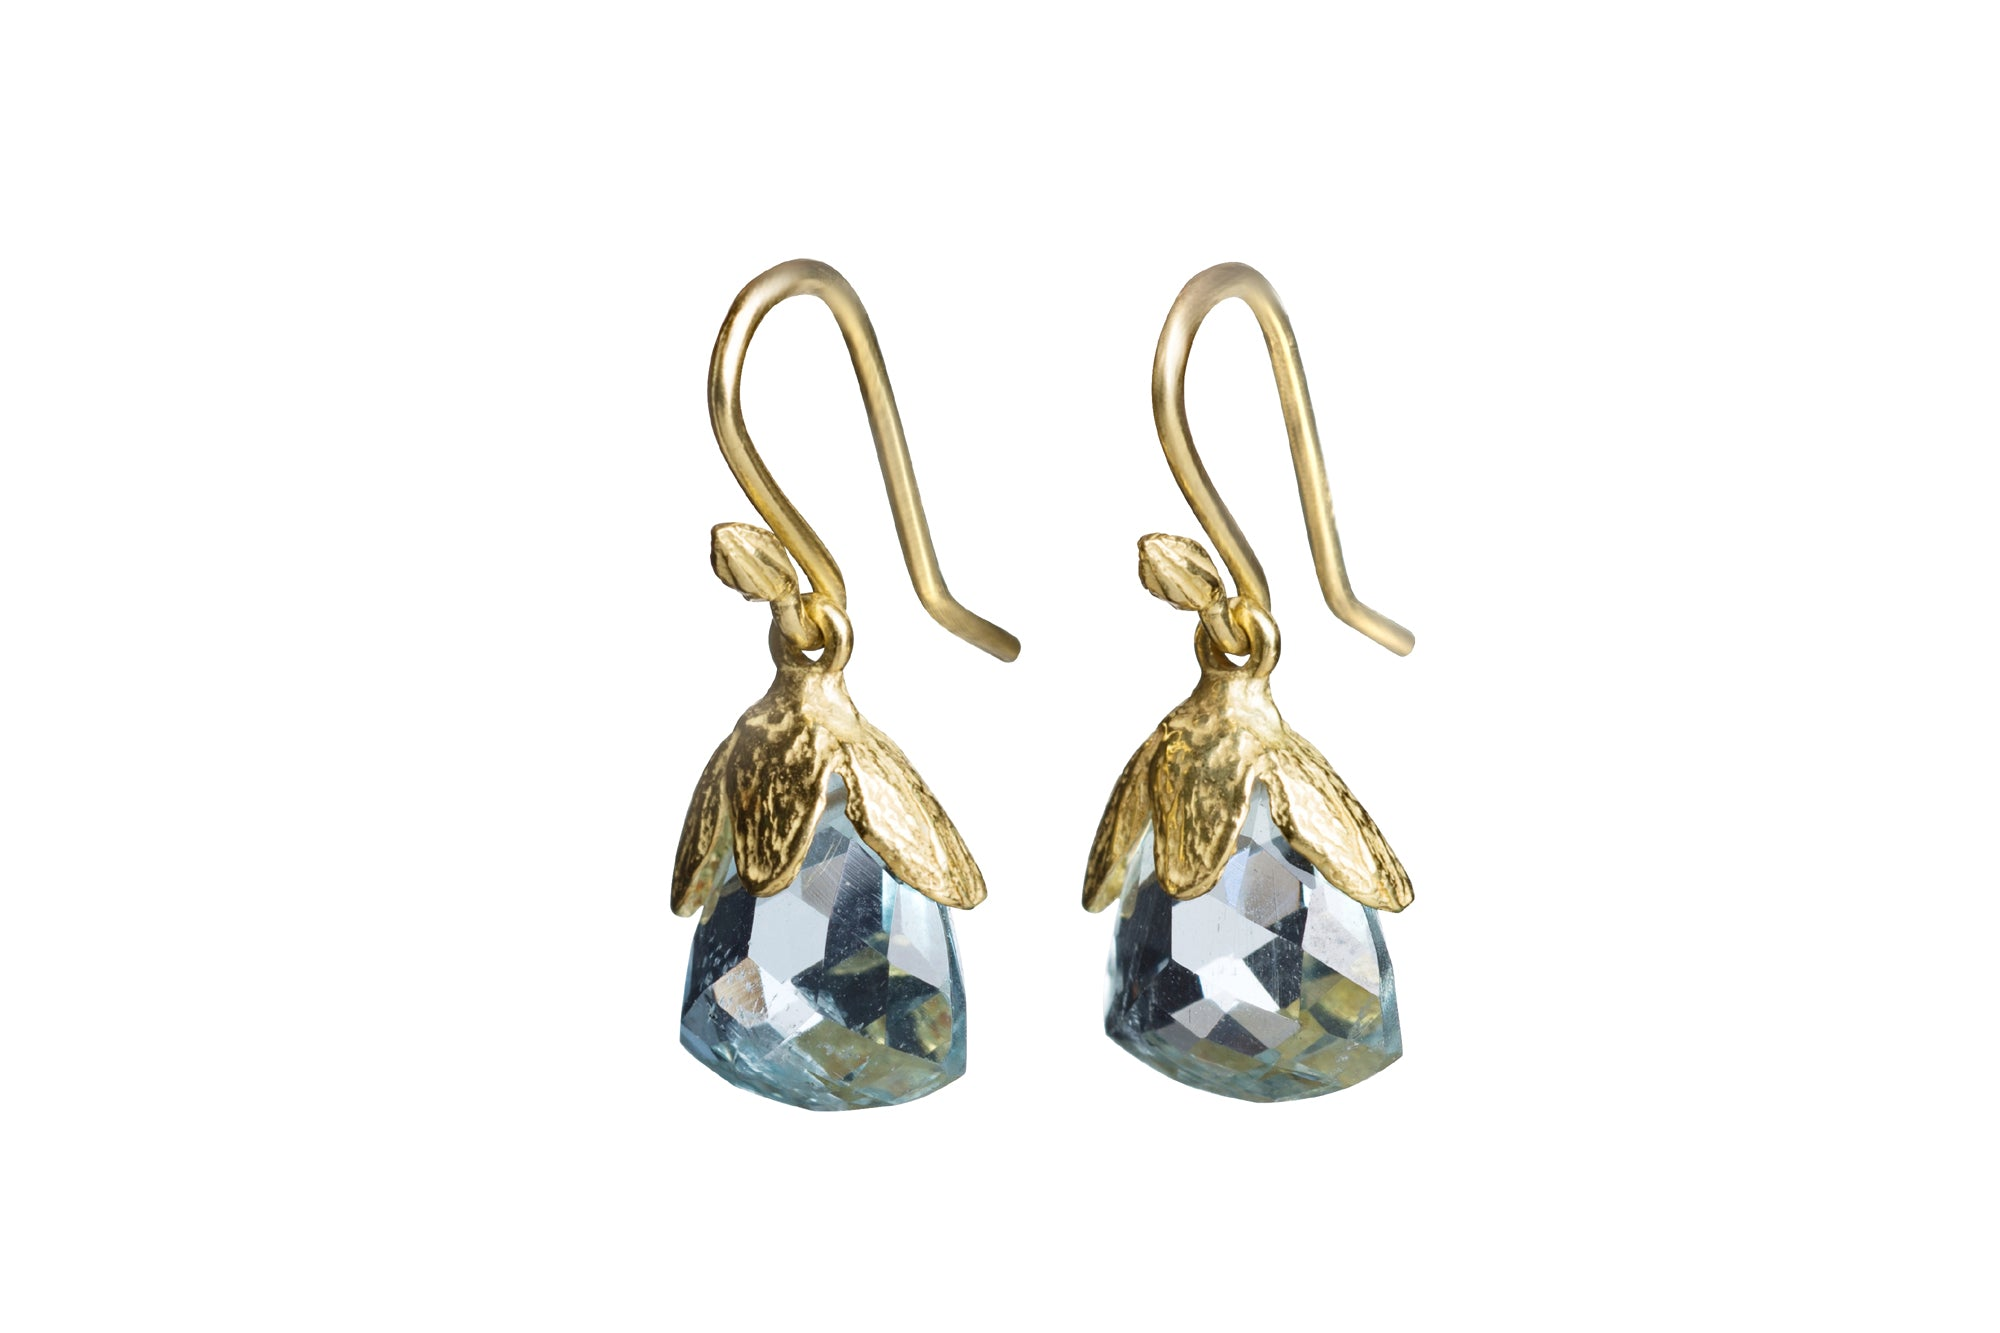 Faceted Triangle Exquisite Quality Aquamarine Single Seed Earrings